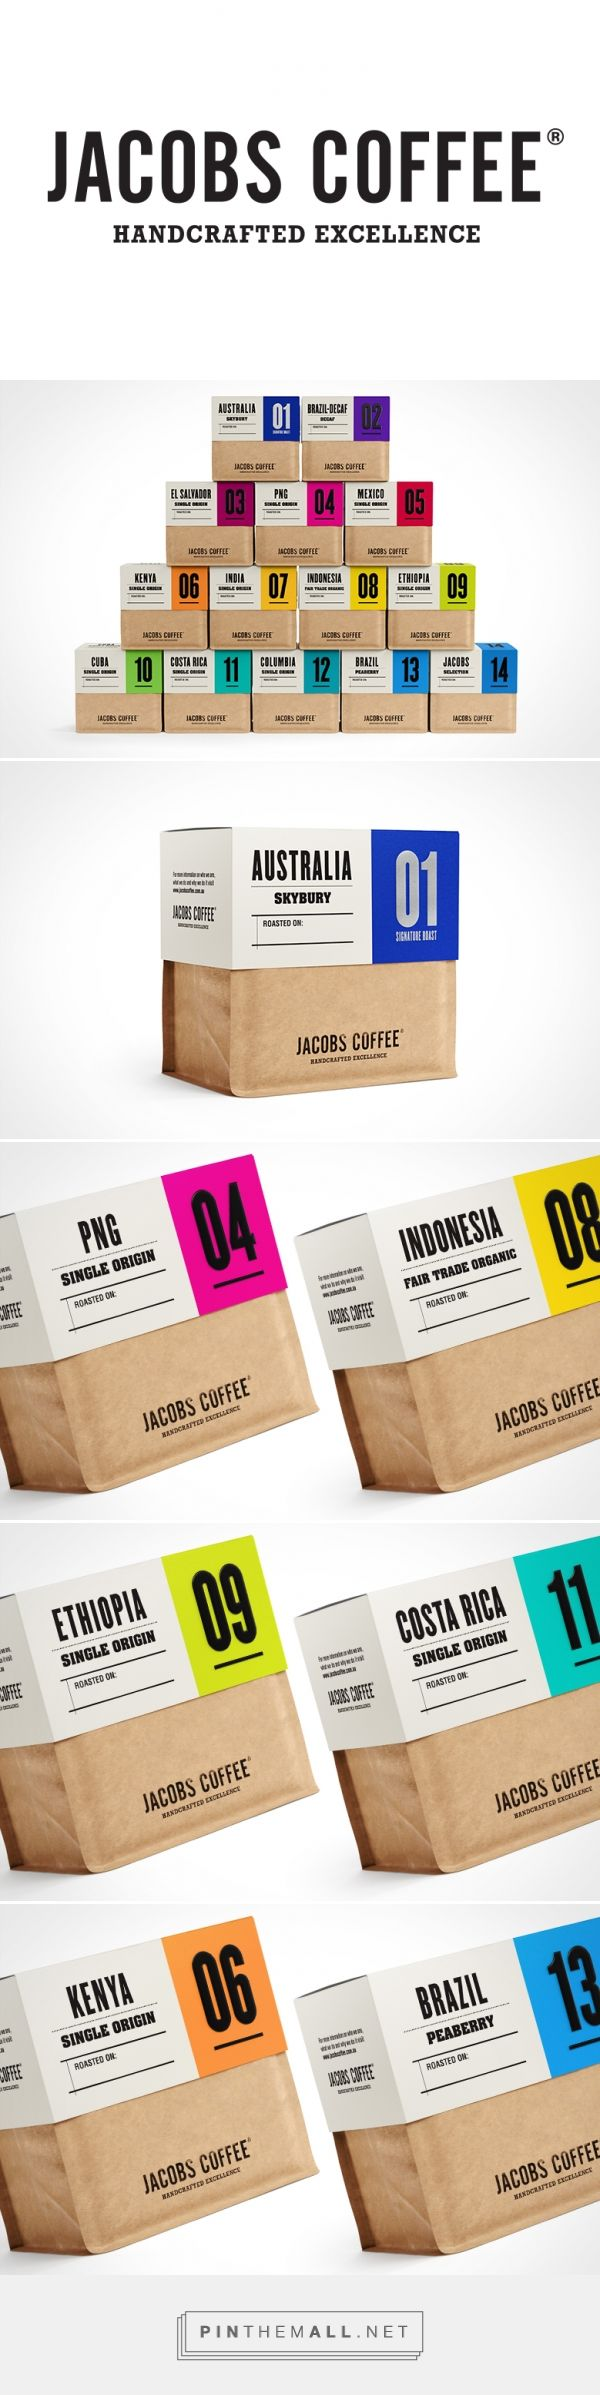 Jacobs Coffee Packaging by Depot Creative | Fivestar Branding – Design and Branding Agency & Inspiration Gallery